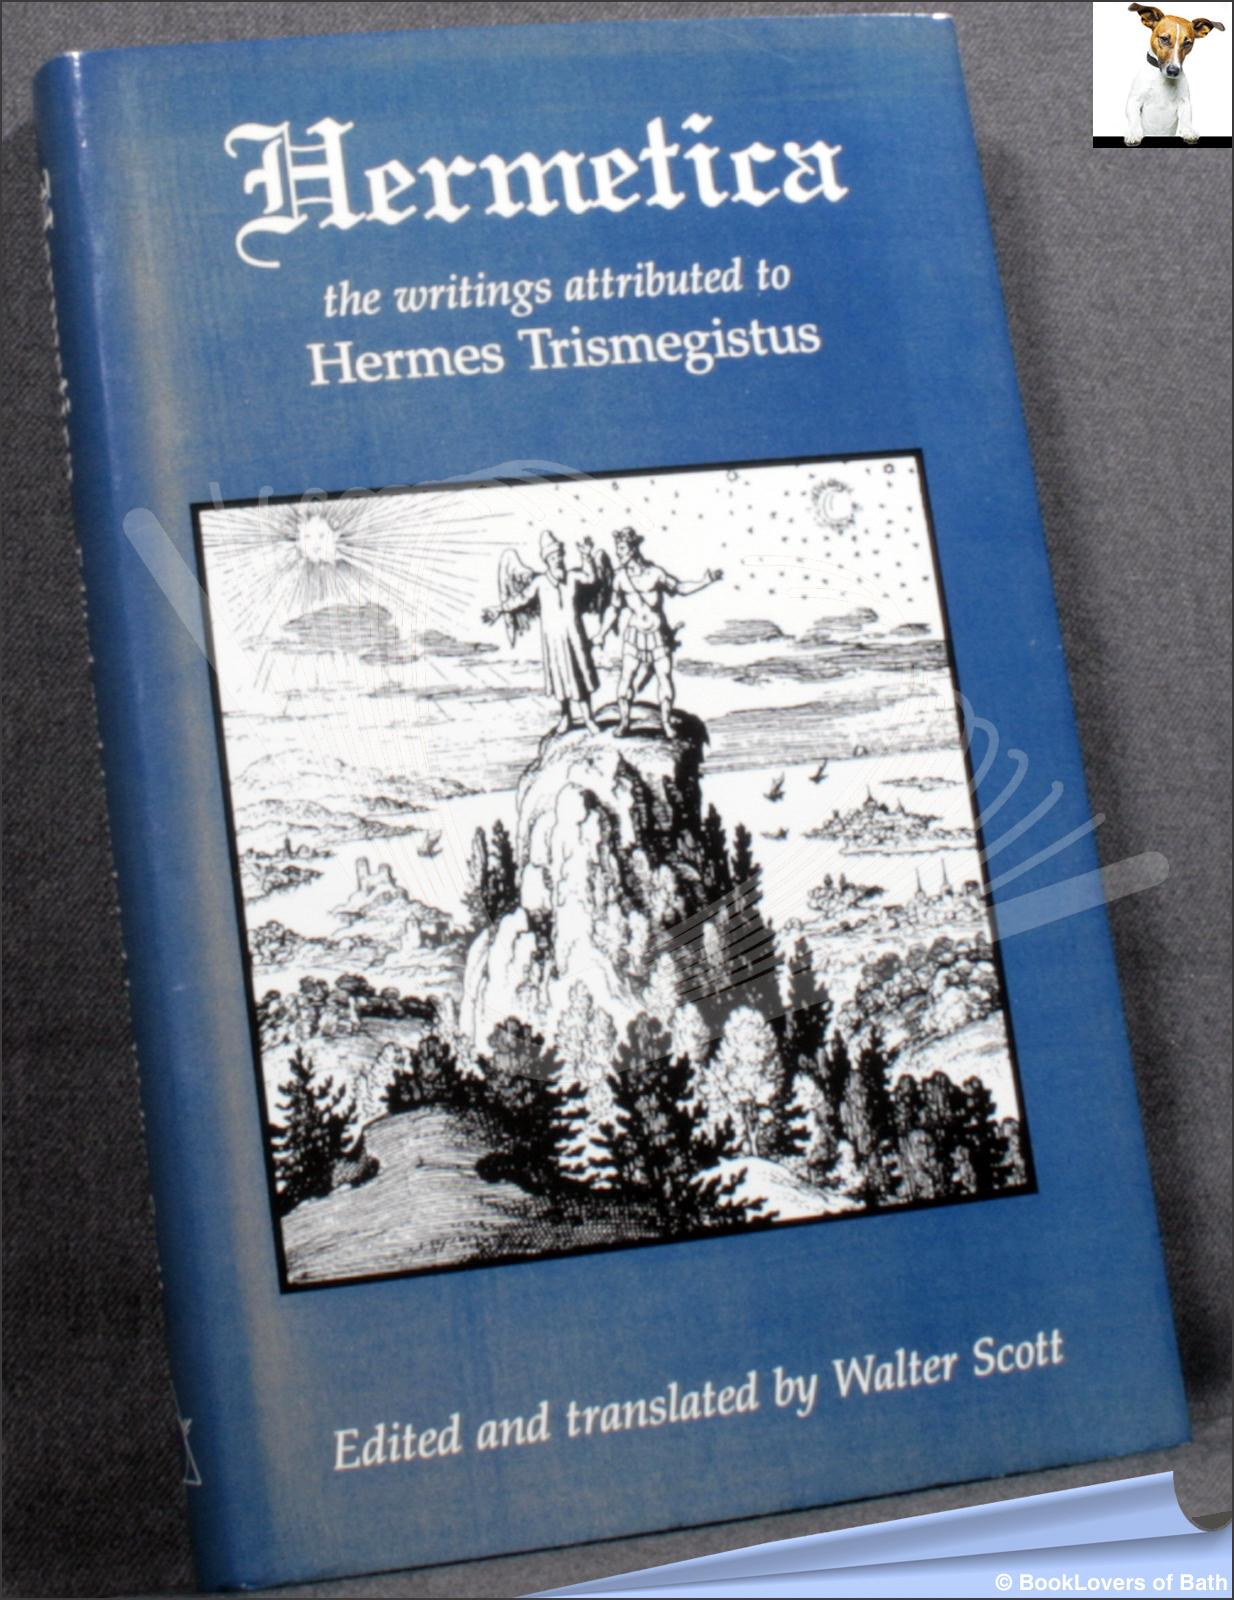 Hermetica: The Ancient Greek and Latin Writings which Contain Religious Or Philosophic Teachings to Hermes Trismegistus - Walter Scott